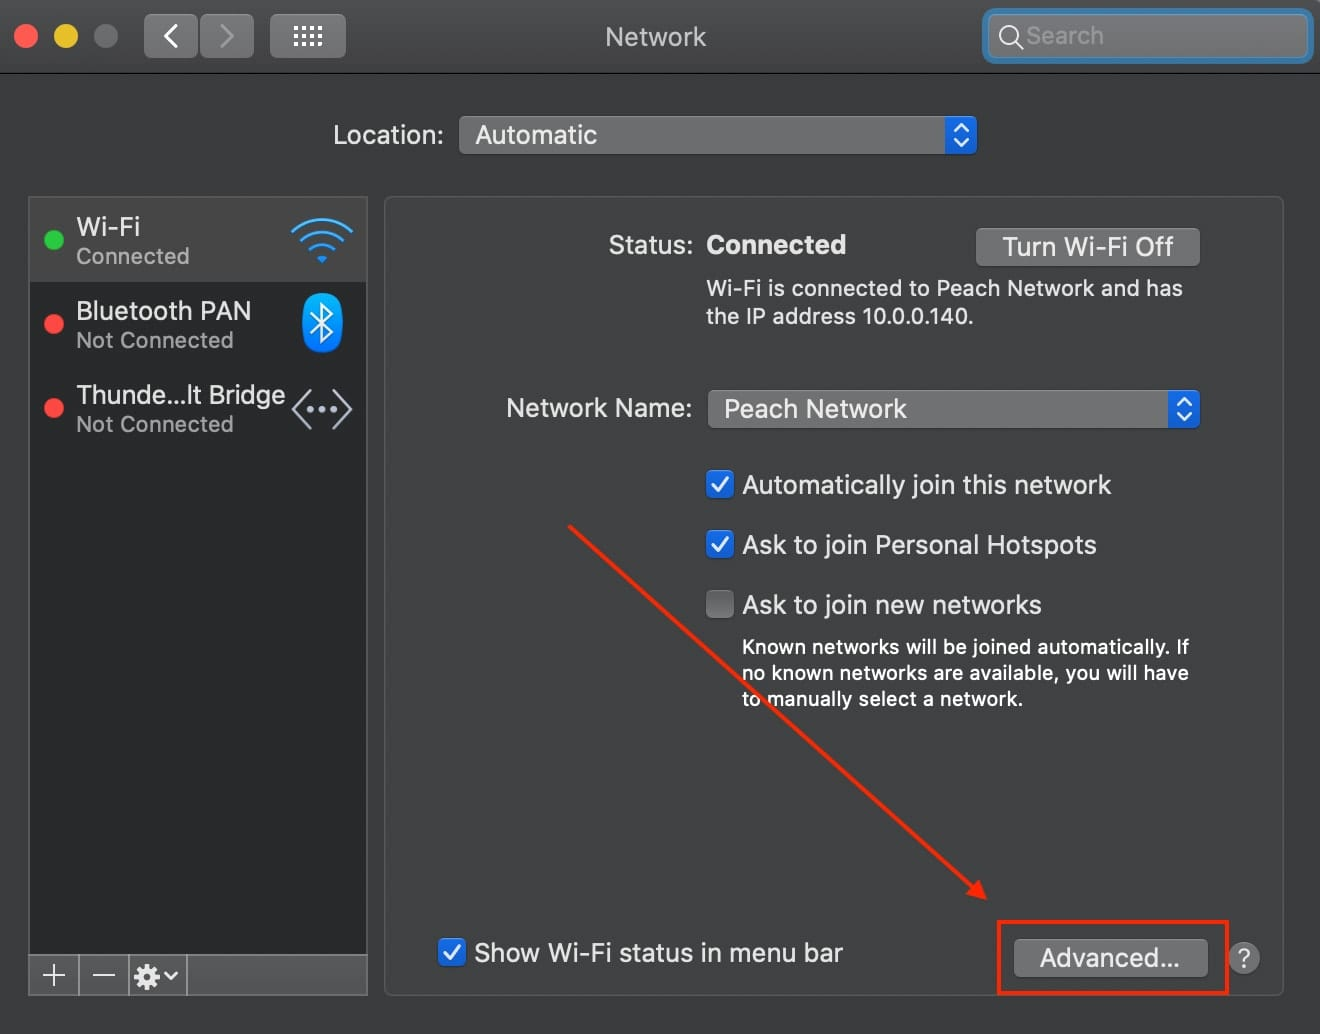 Network preferences showing the Advanced button highlighted